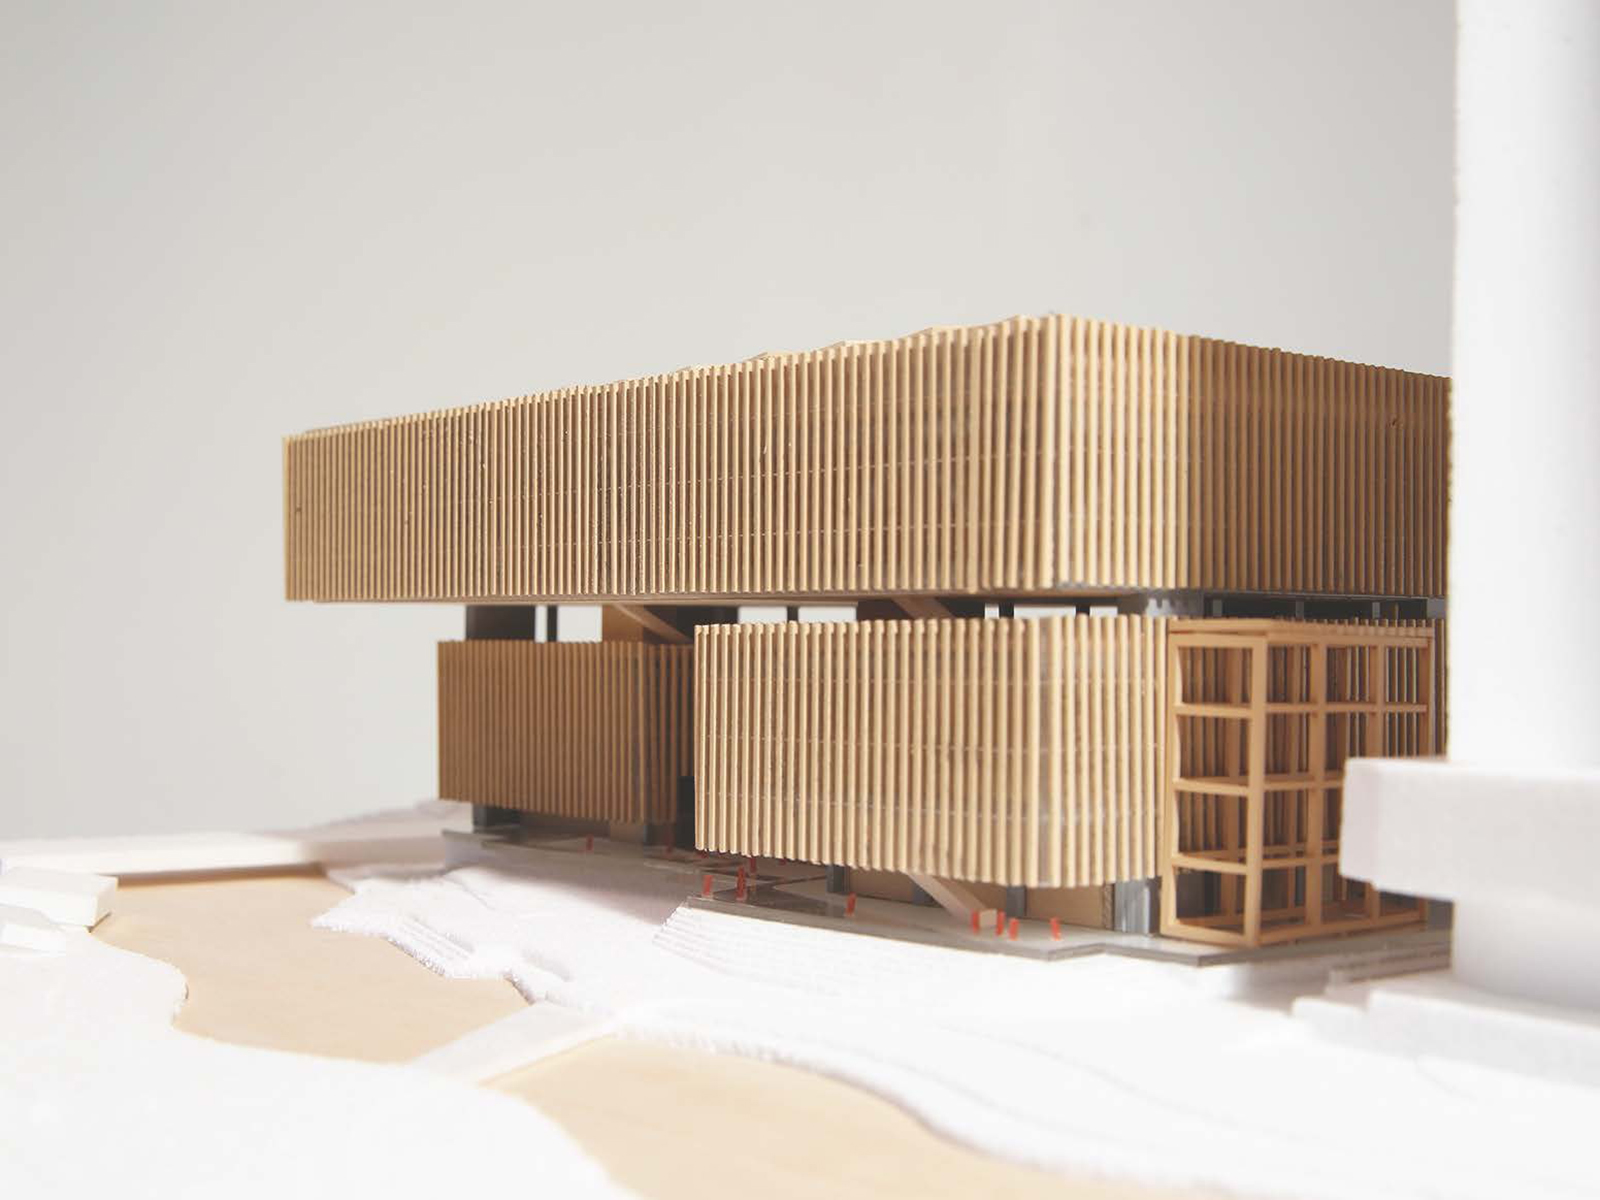 Images: Bernardes Architecture and Scale Architecture